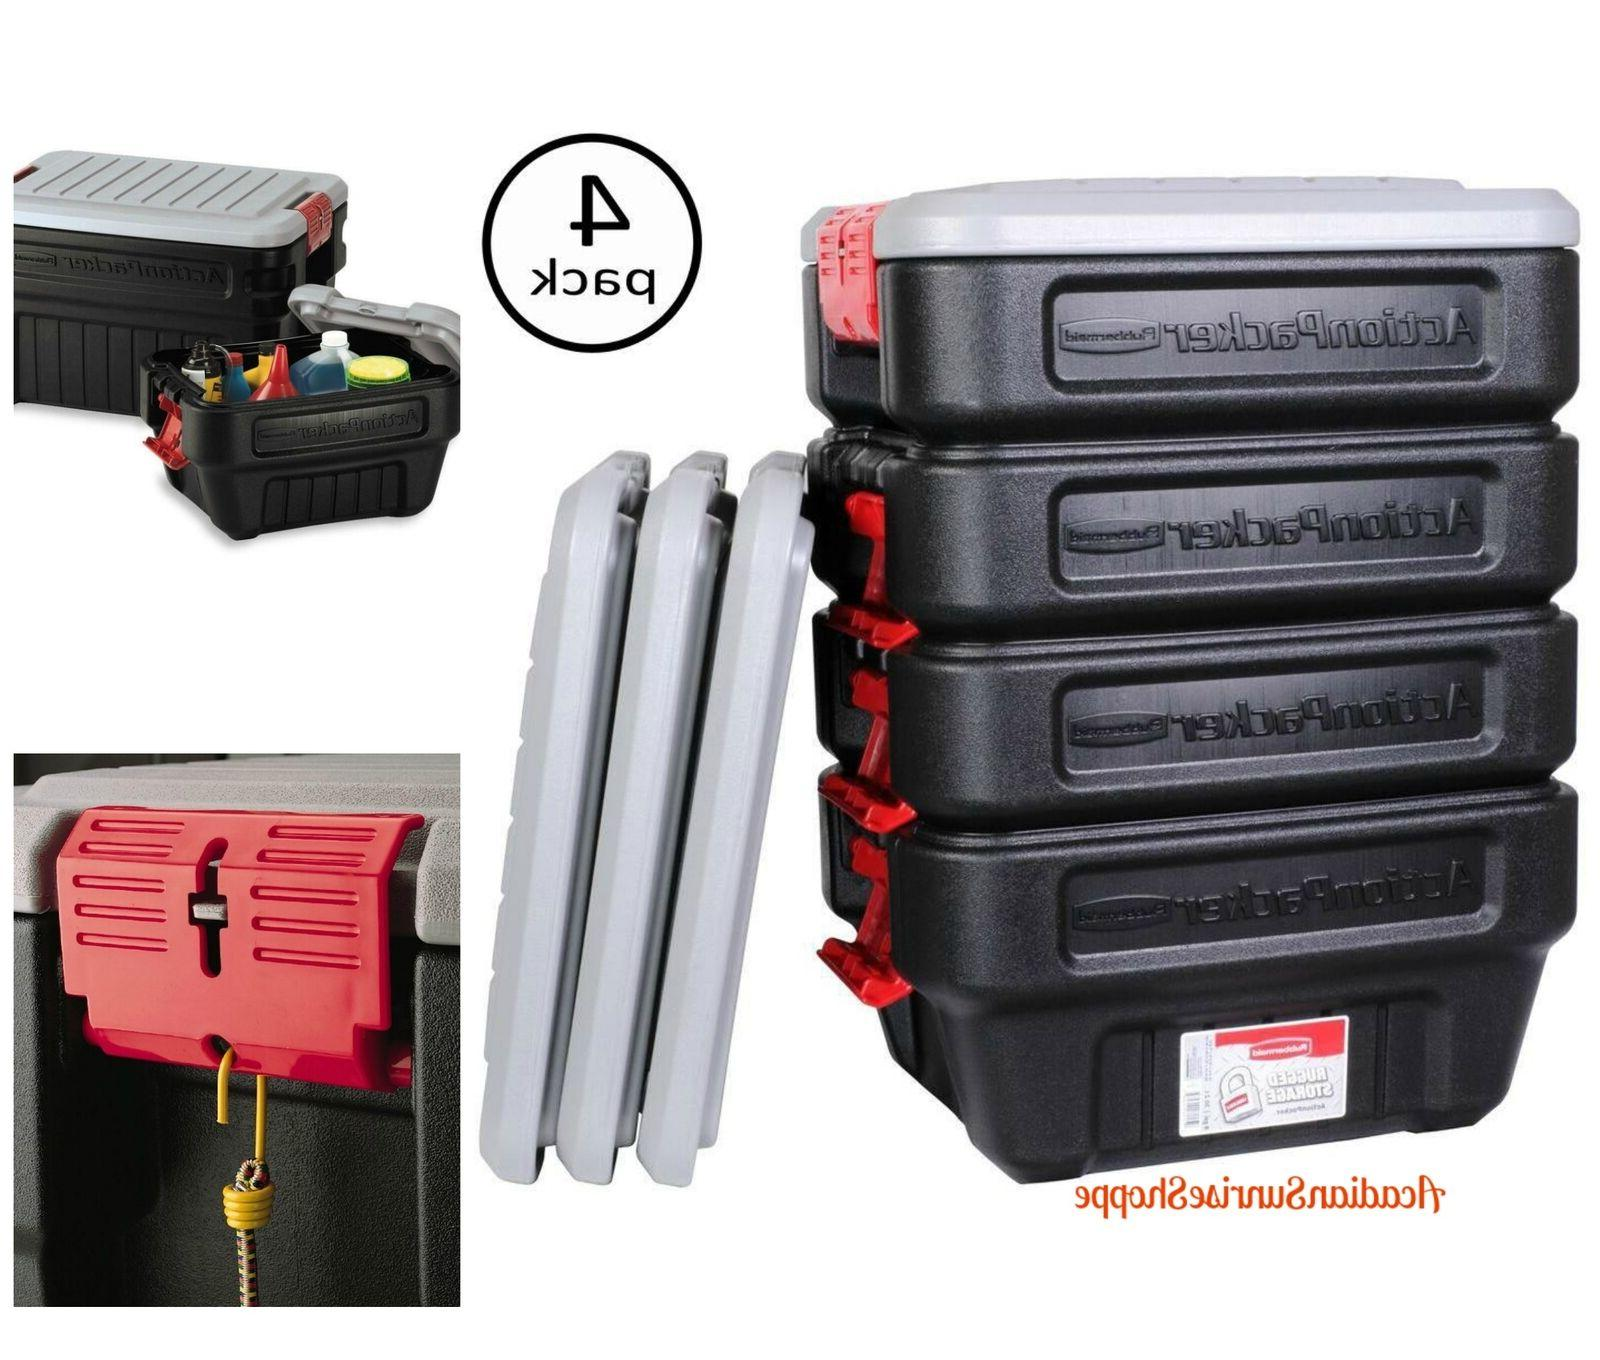 8 gal action packer storage tote 4